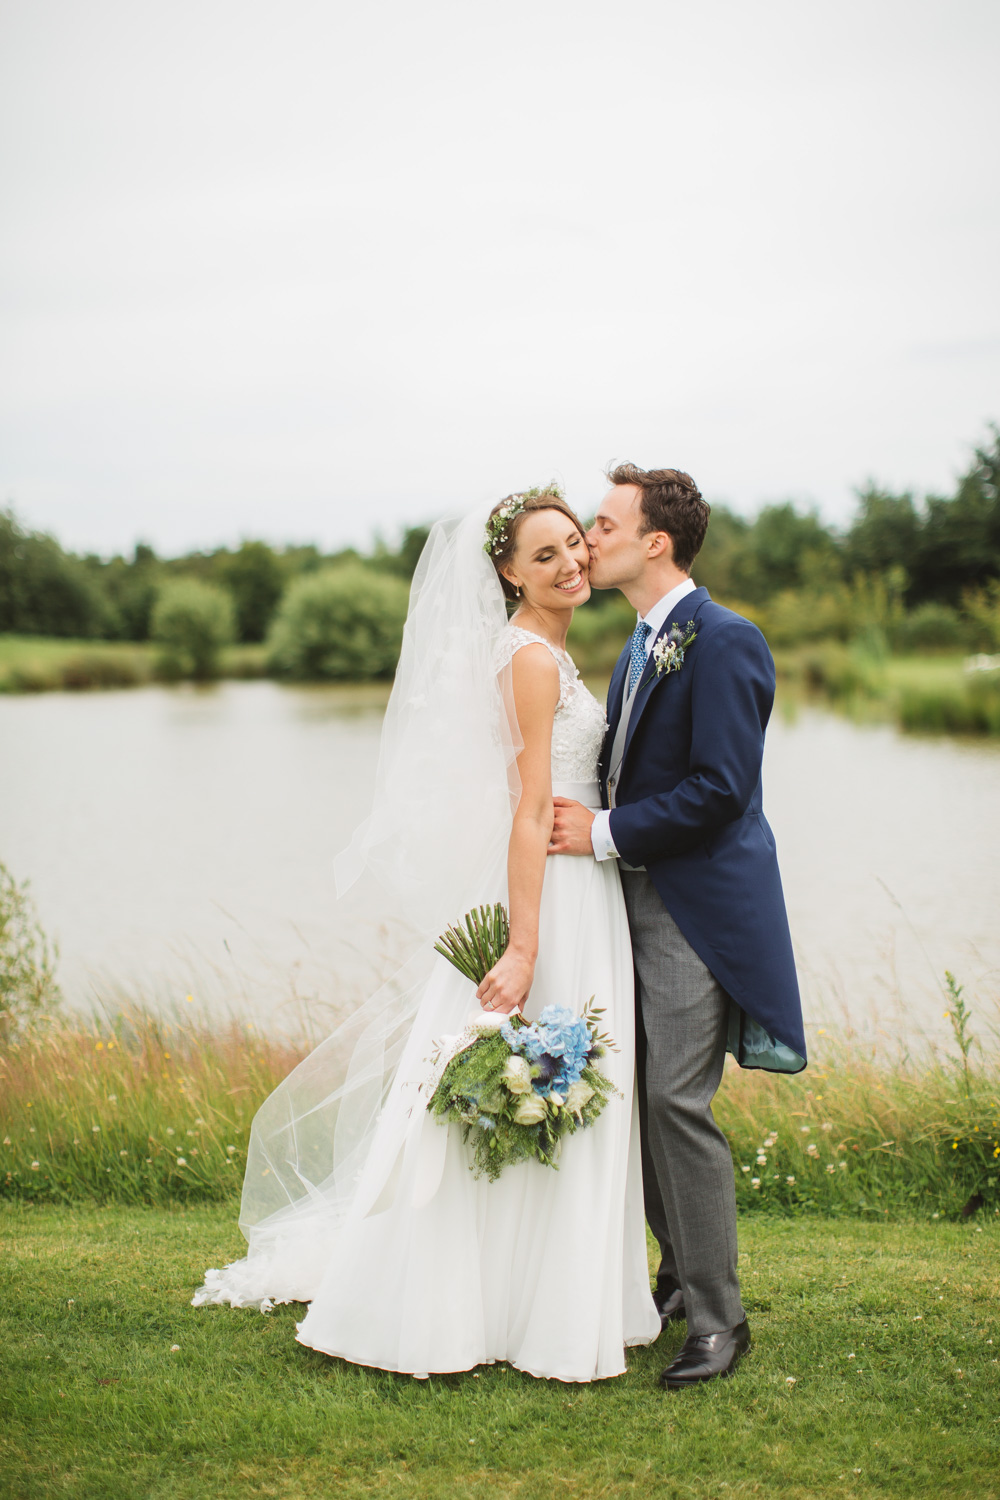 Rustic Wedding at High House Weddings in Essex with Ingrida Bridal Gown